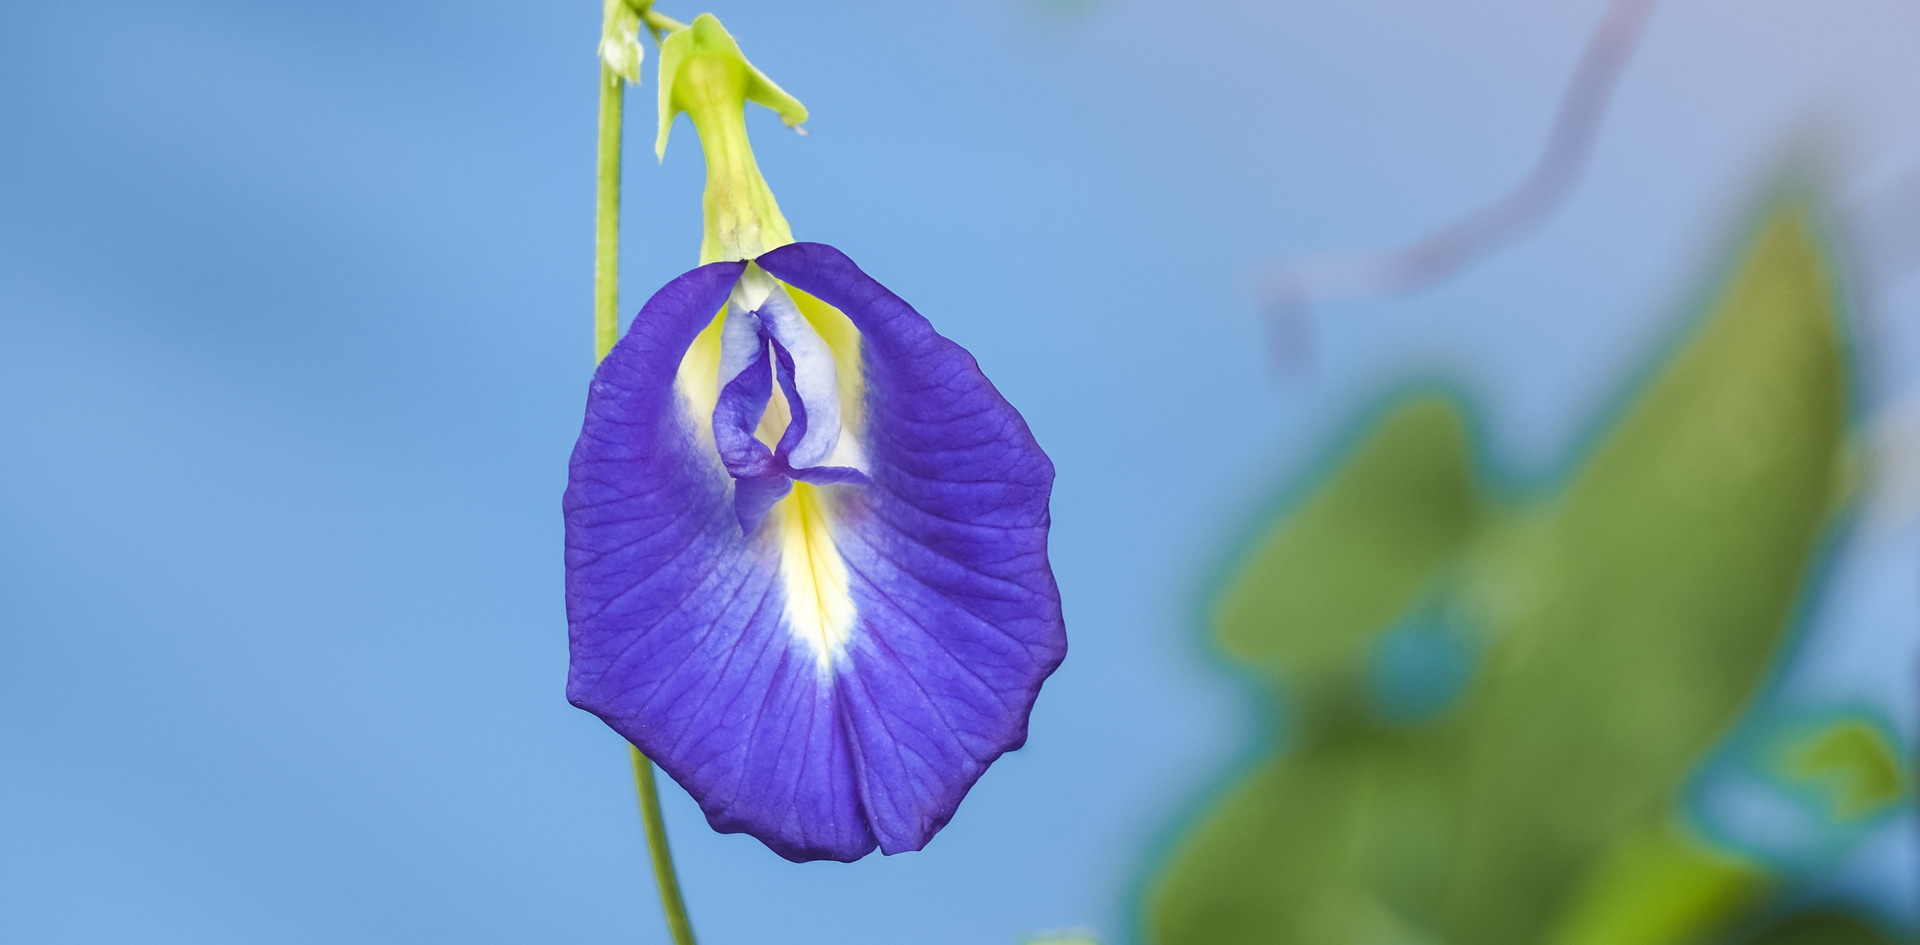 butterfly pea flower, purple flower in b